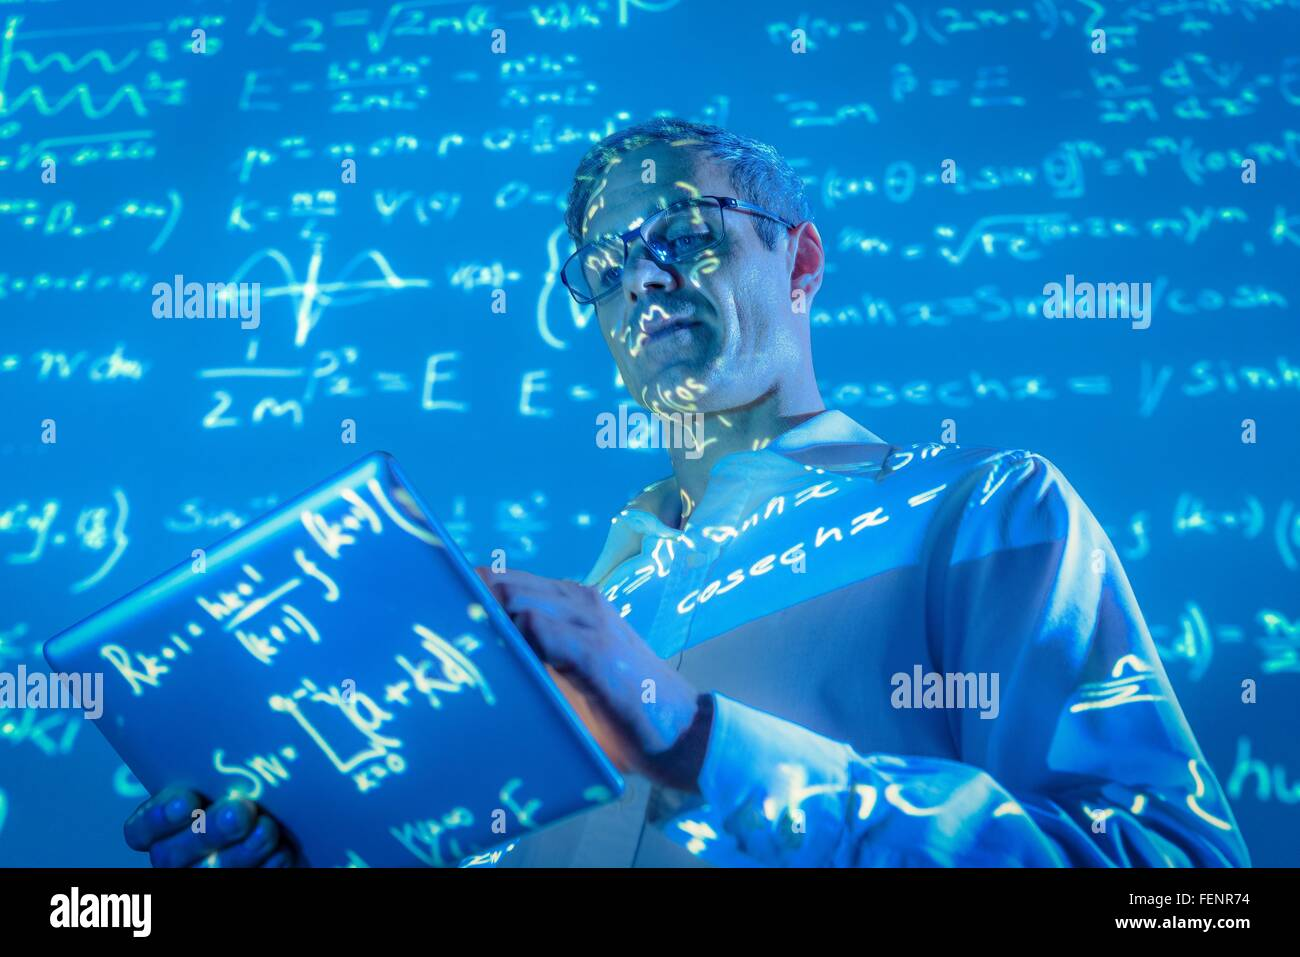 Scientist with digital tablet and projected mathematical data - Stock Image